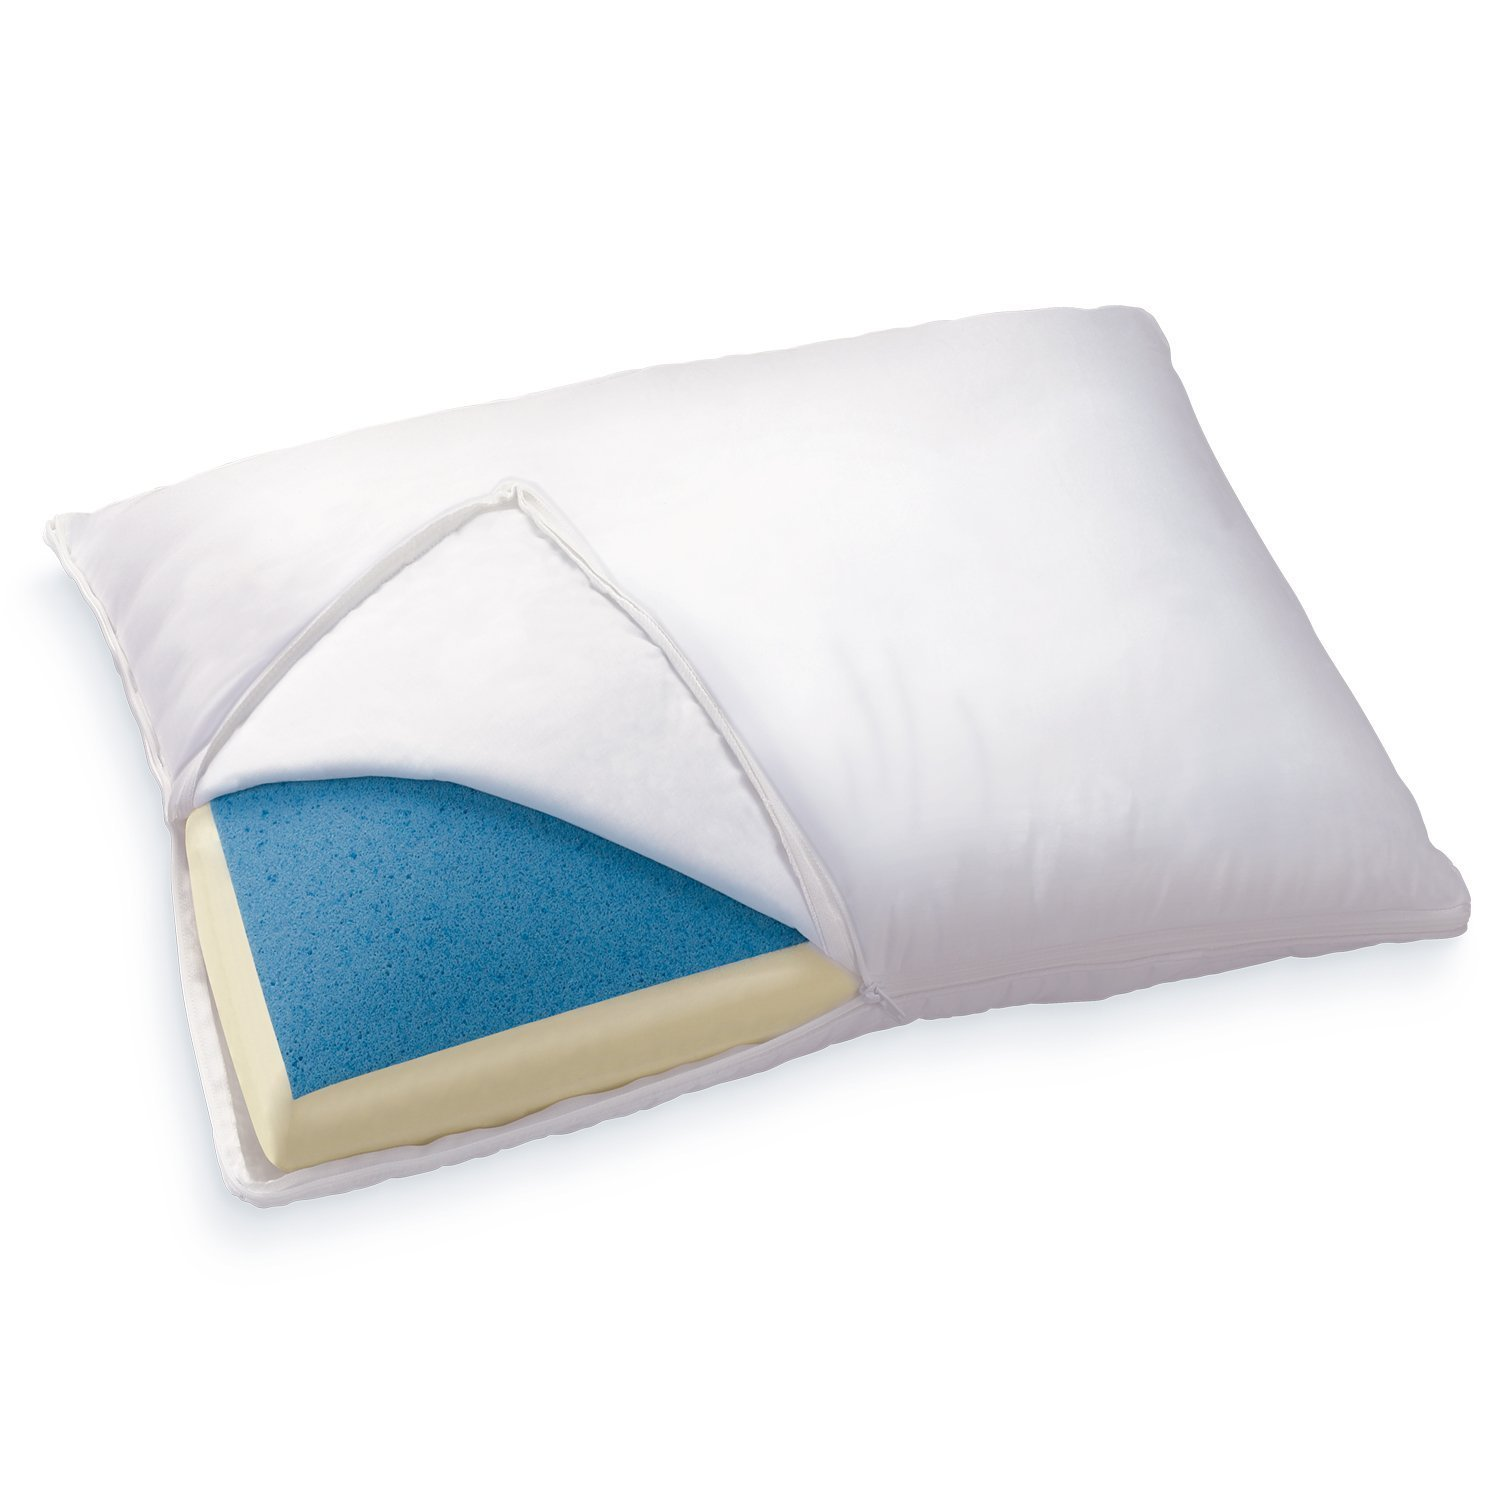 Best Pillow for Night Sweats Sleep Cool and ComfortableElite Rest